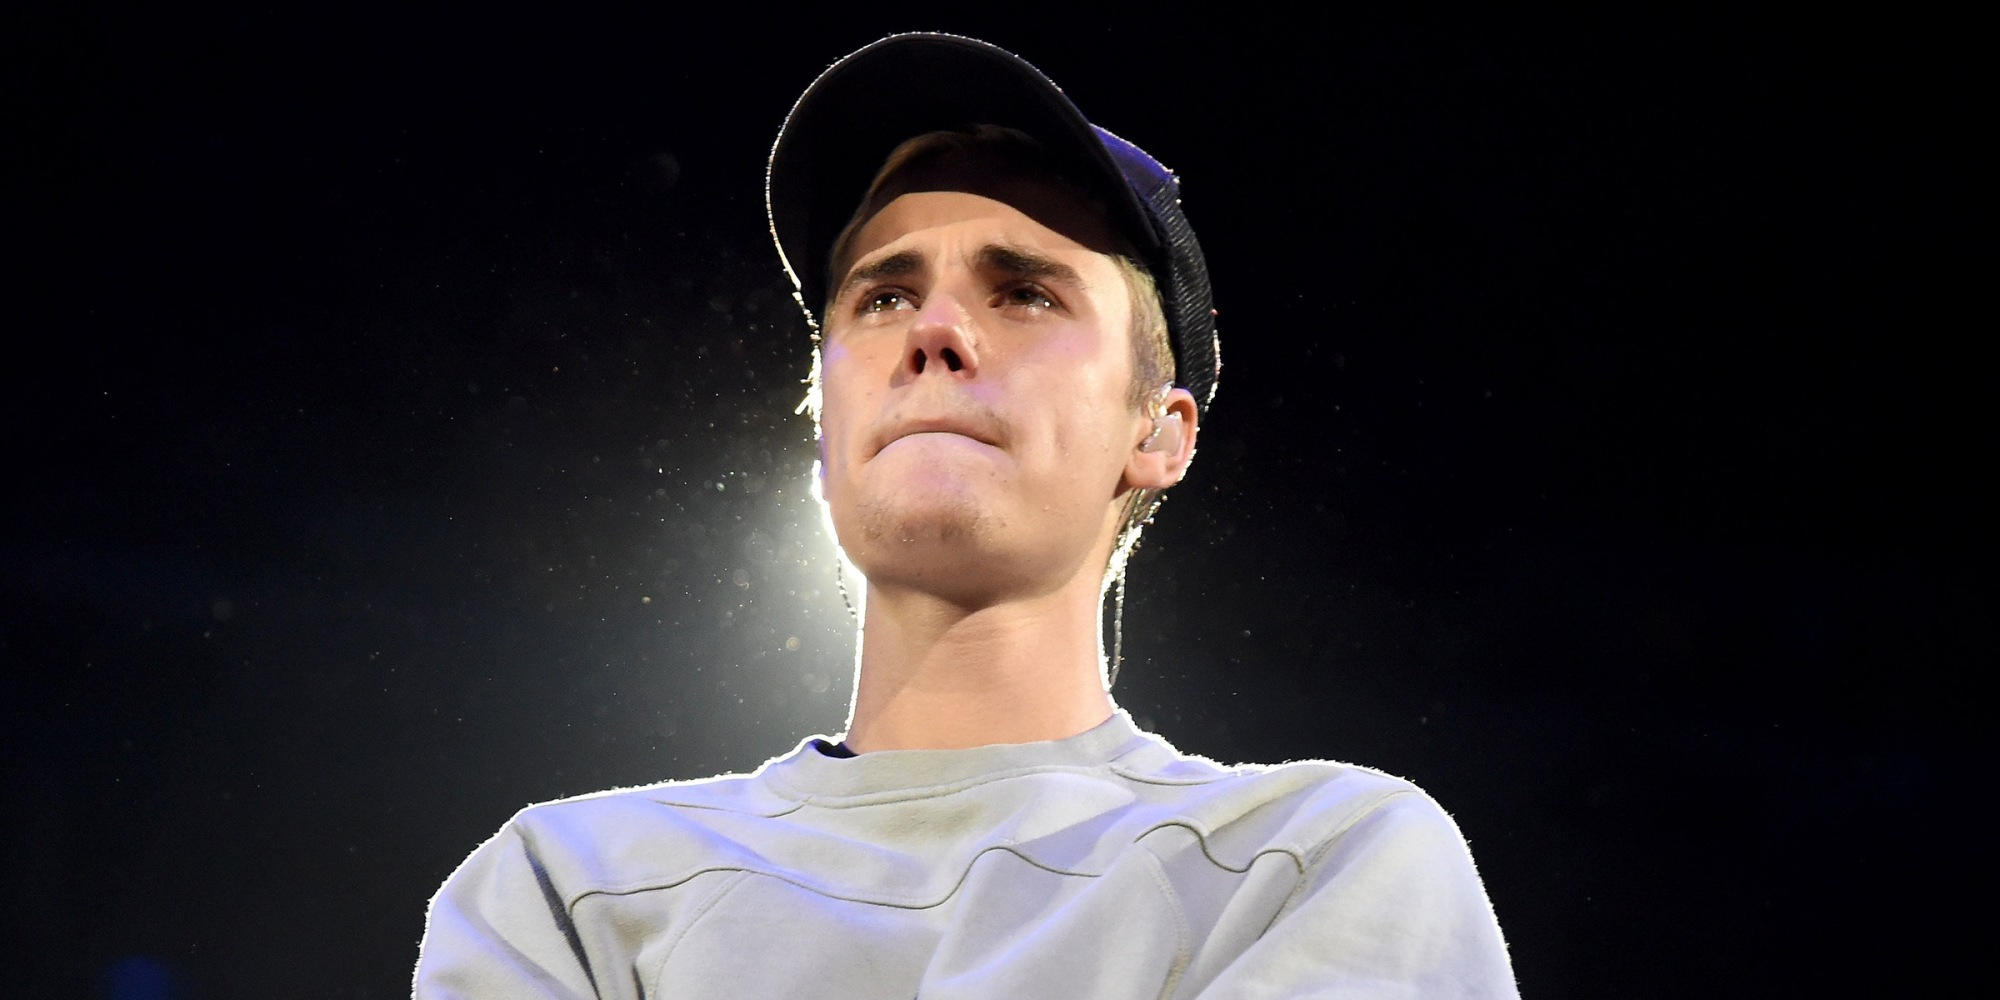 Justin Bieber reveals Lyme disease diagnosis